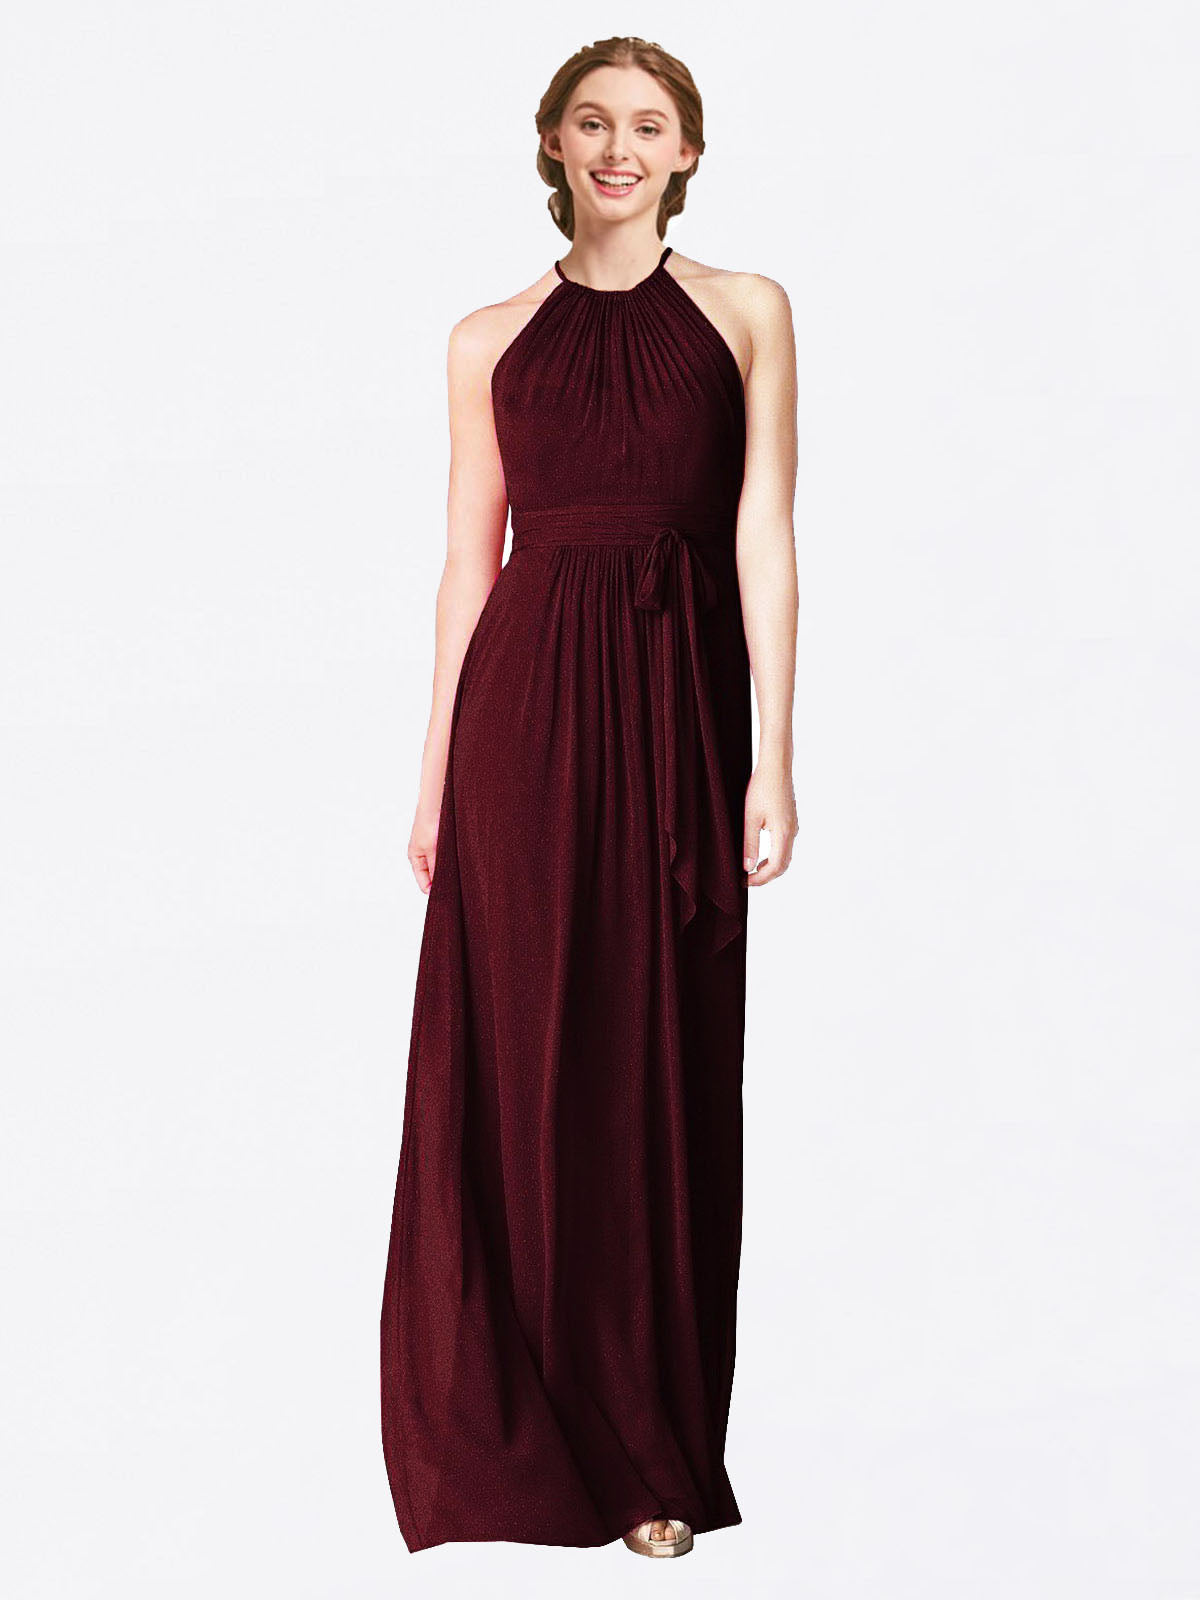 Long A-Line Halter Sleeveless Burgundy Gold Chiffon Bridesmaid Dress Laura